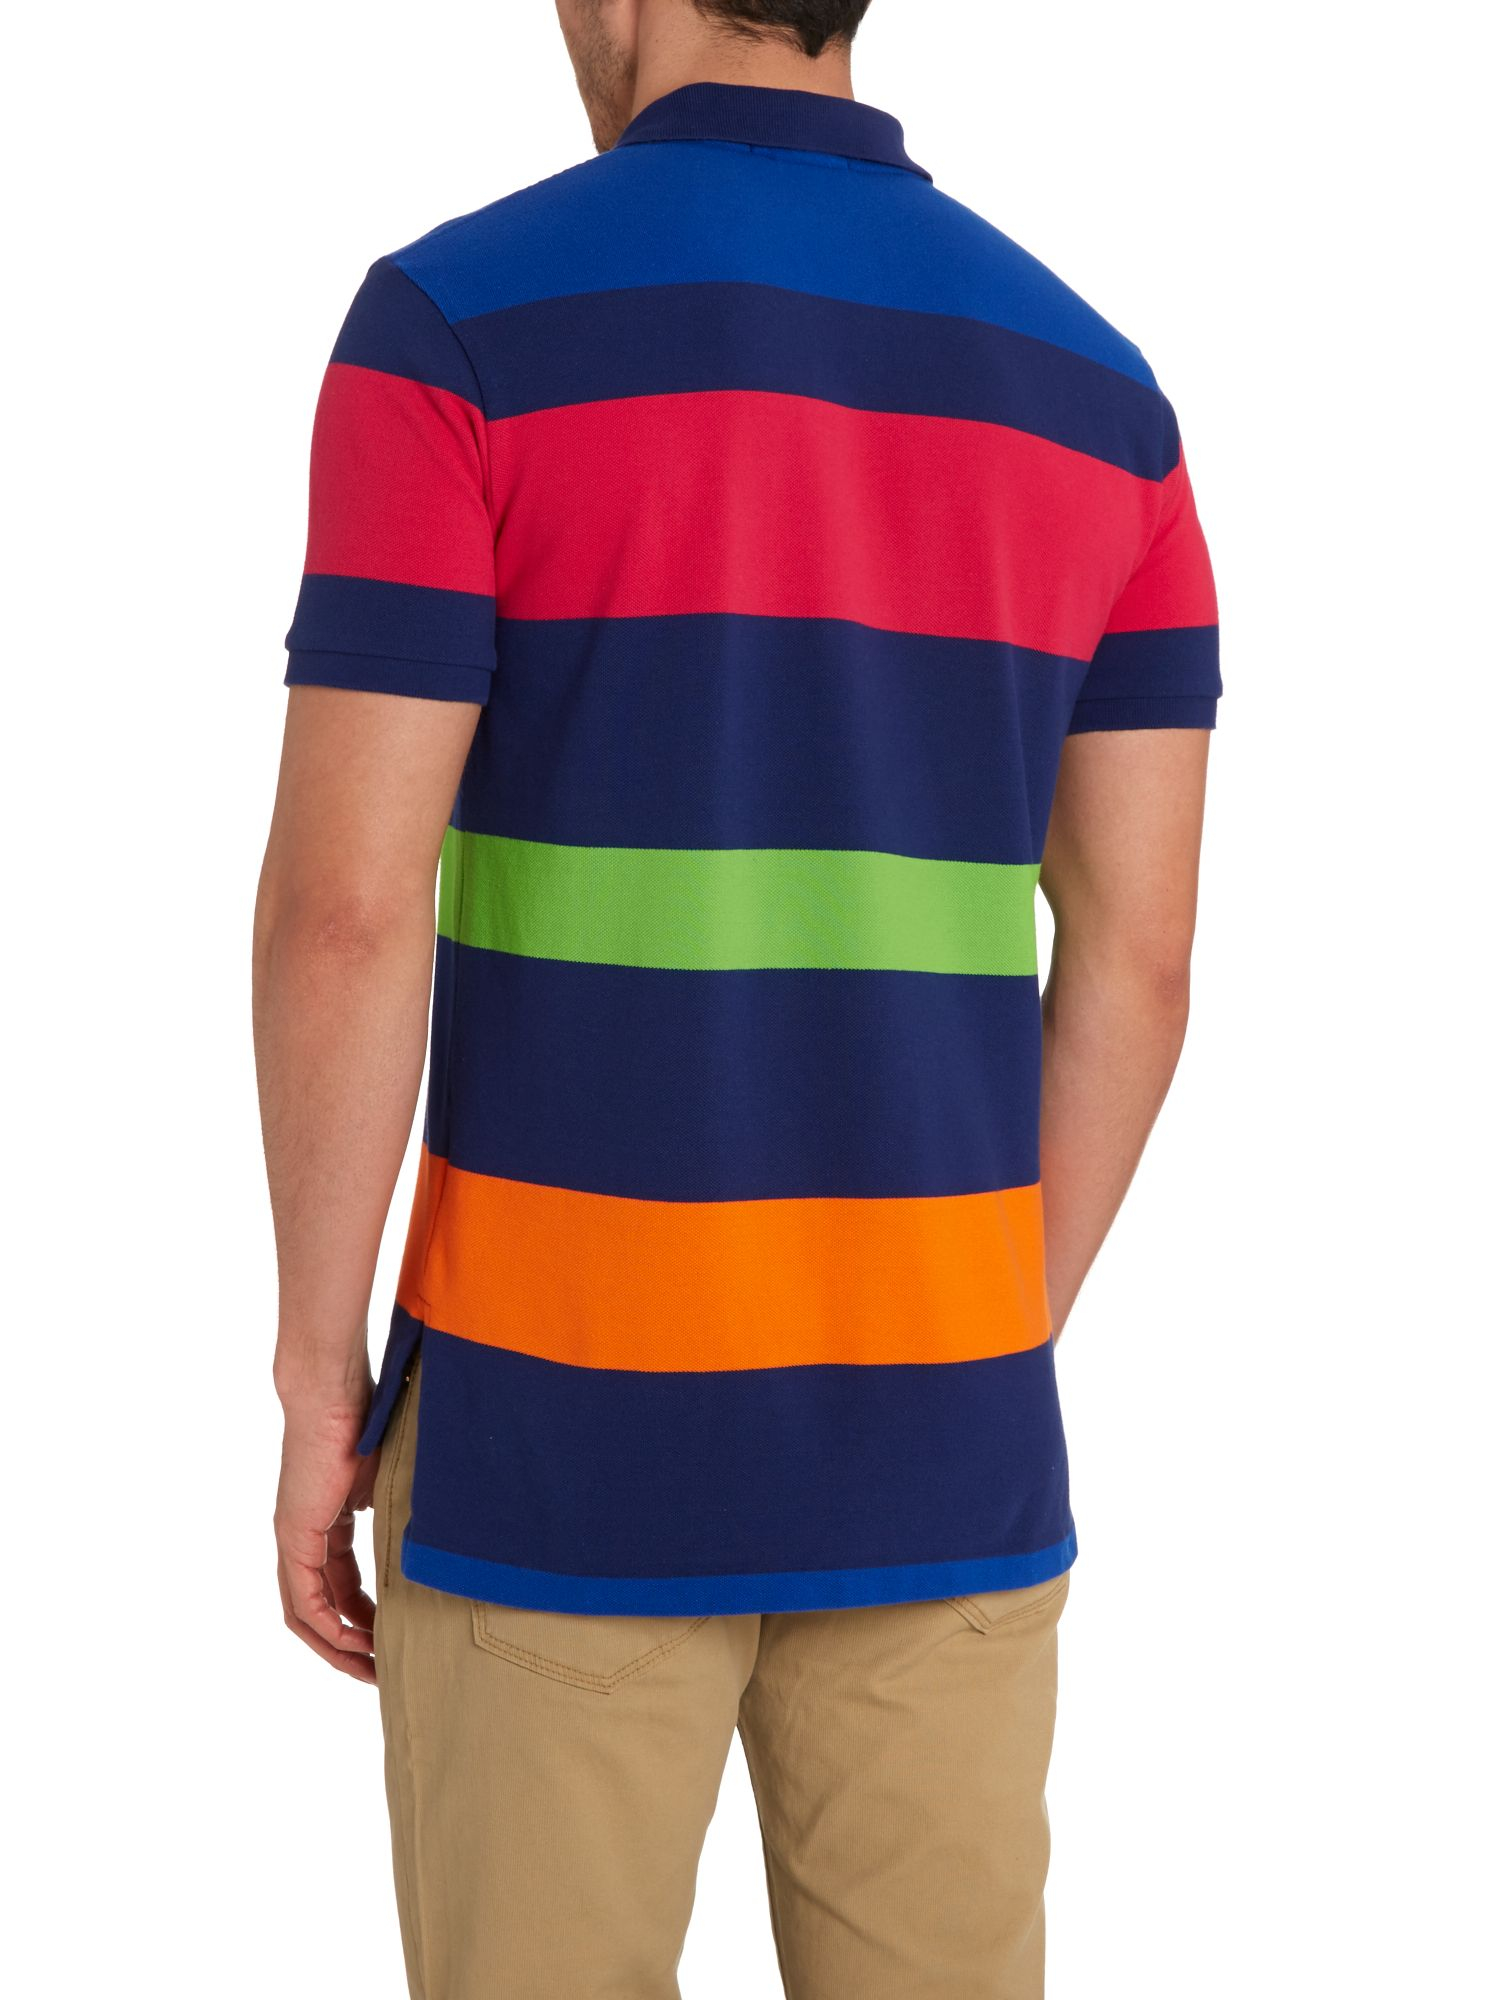 Lyst - Polo Ralph Lauren Multi Stripe Custom Fit Polo Shirt in Blue for Men